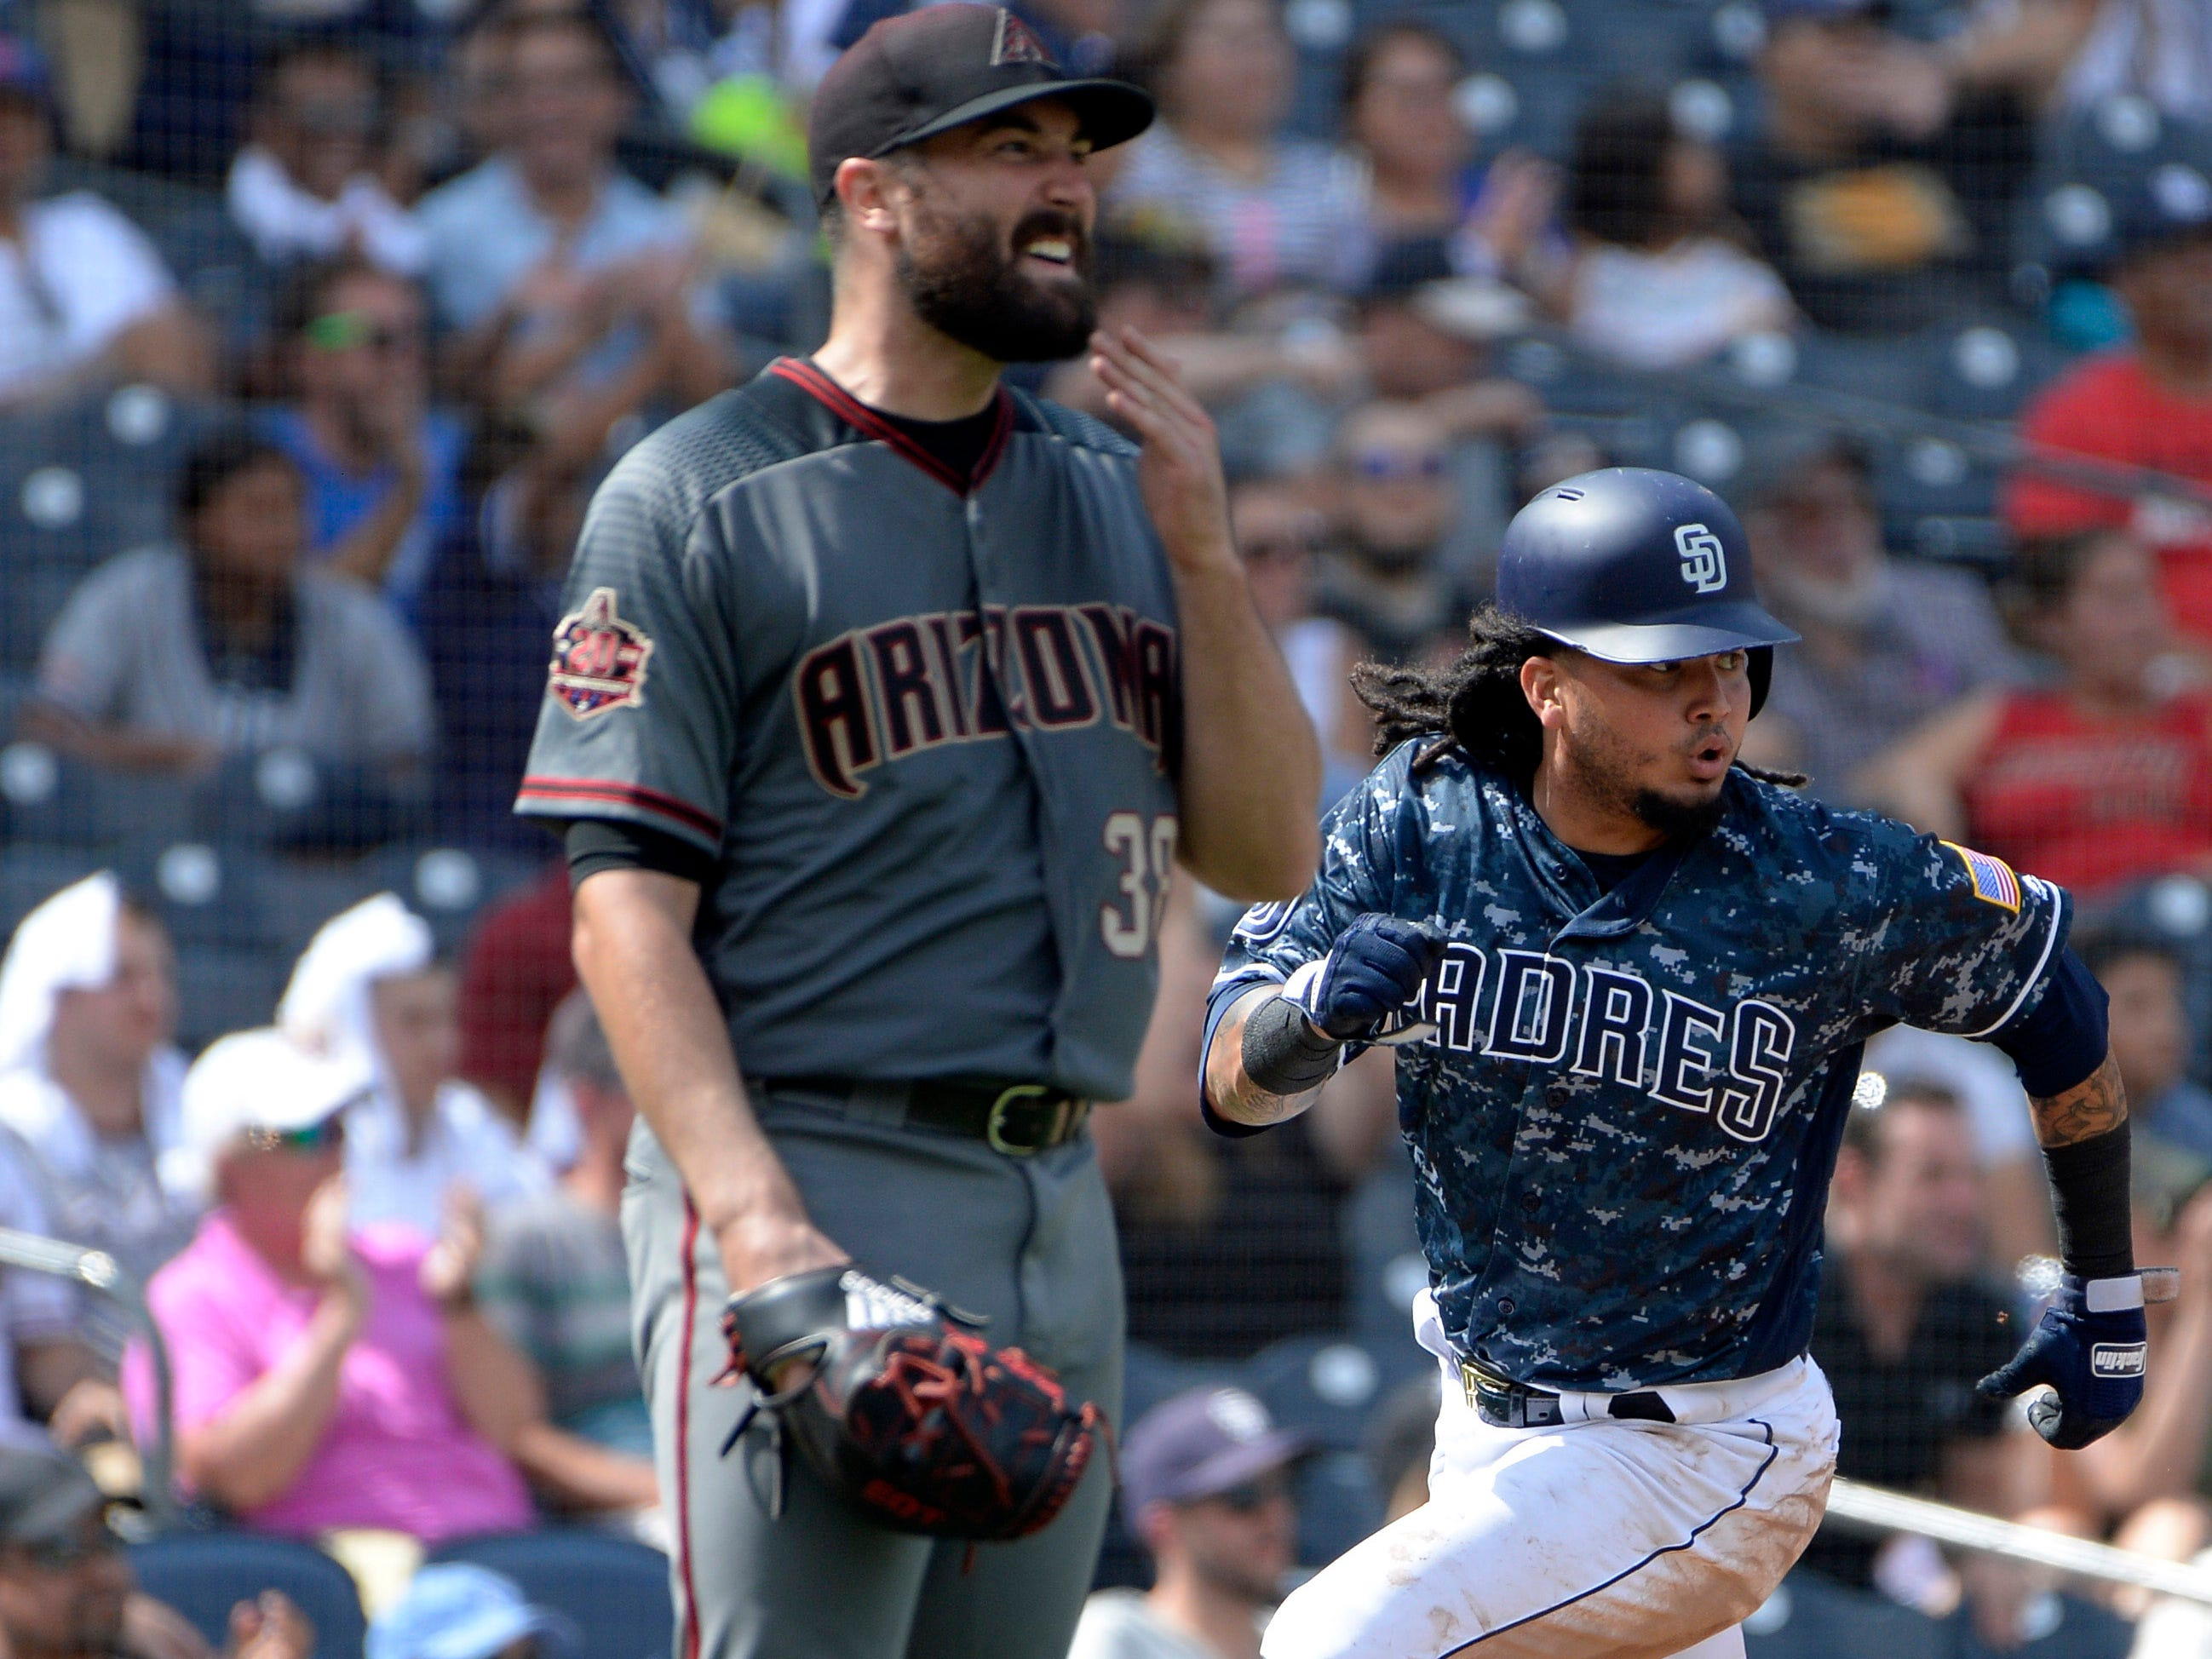 Sep 30, 2018; San Diego, CA, USA; San Diego Padres shortstop Freddy Galvis (right) runs to score as Arizona Diamondbacks starting pitcher Robbie Ray (left) reacts in the fifth inning at Petco Park. Mandatory Credit: Jake Roth-USA TODAY Sports